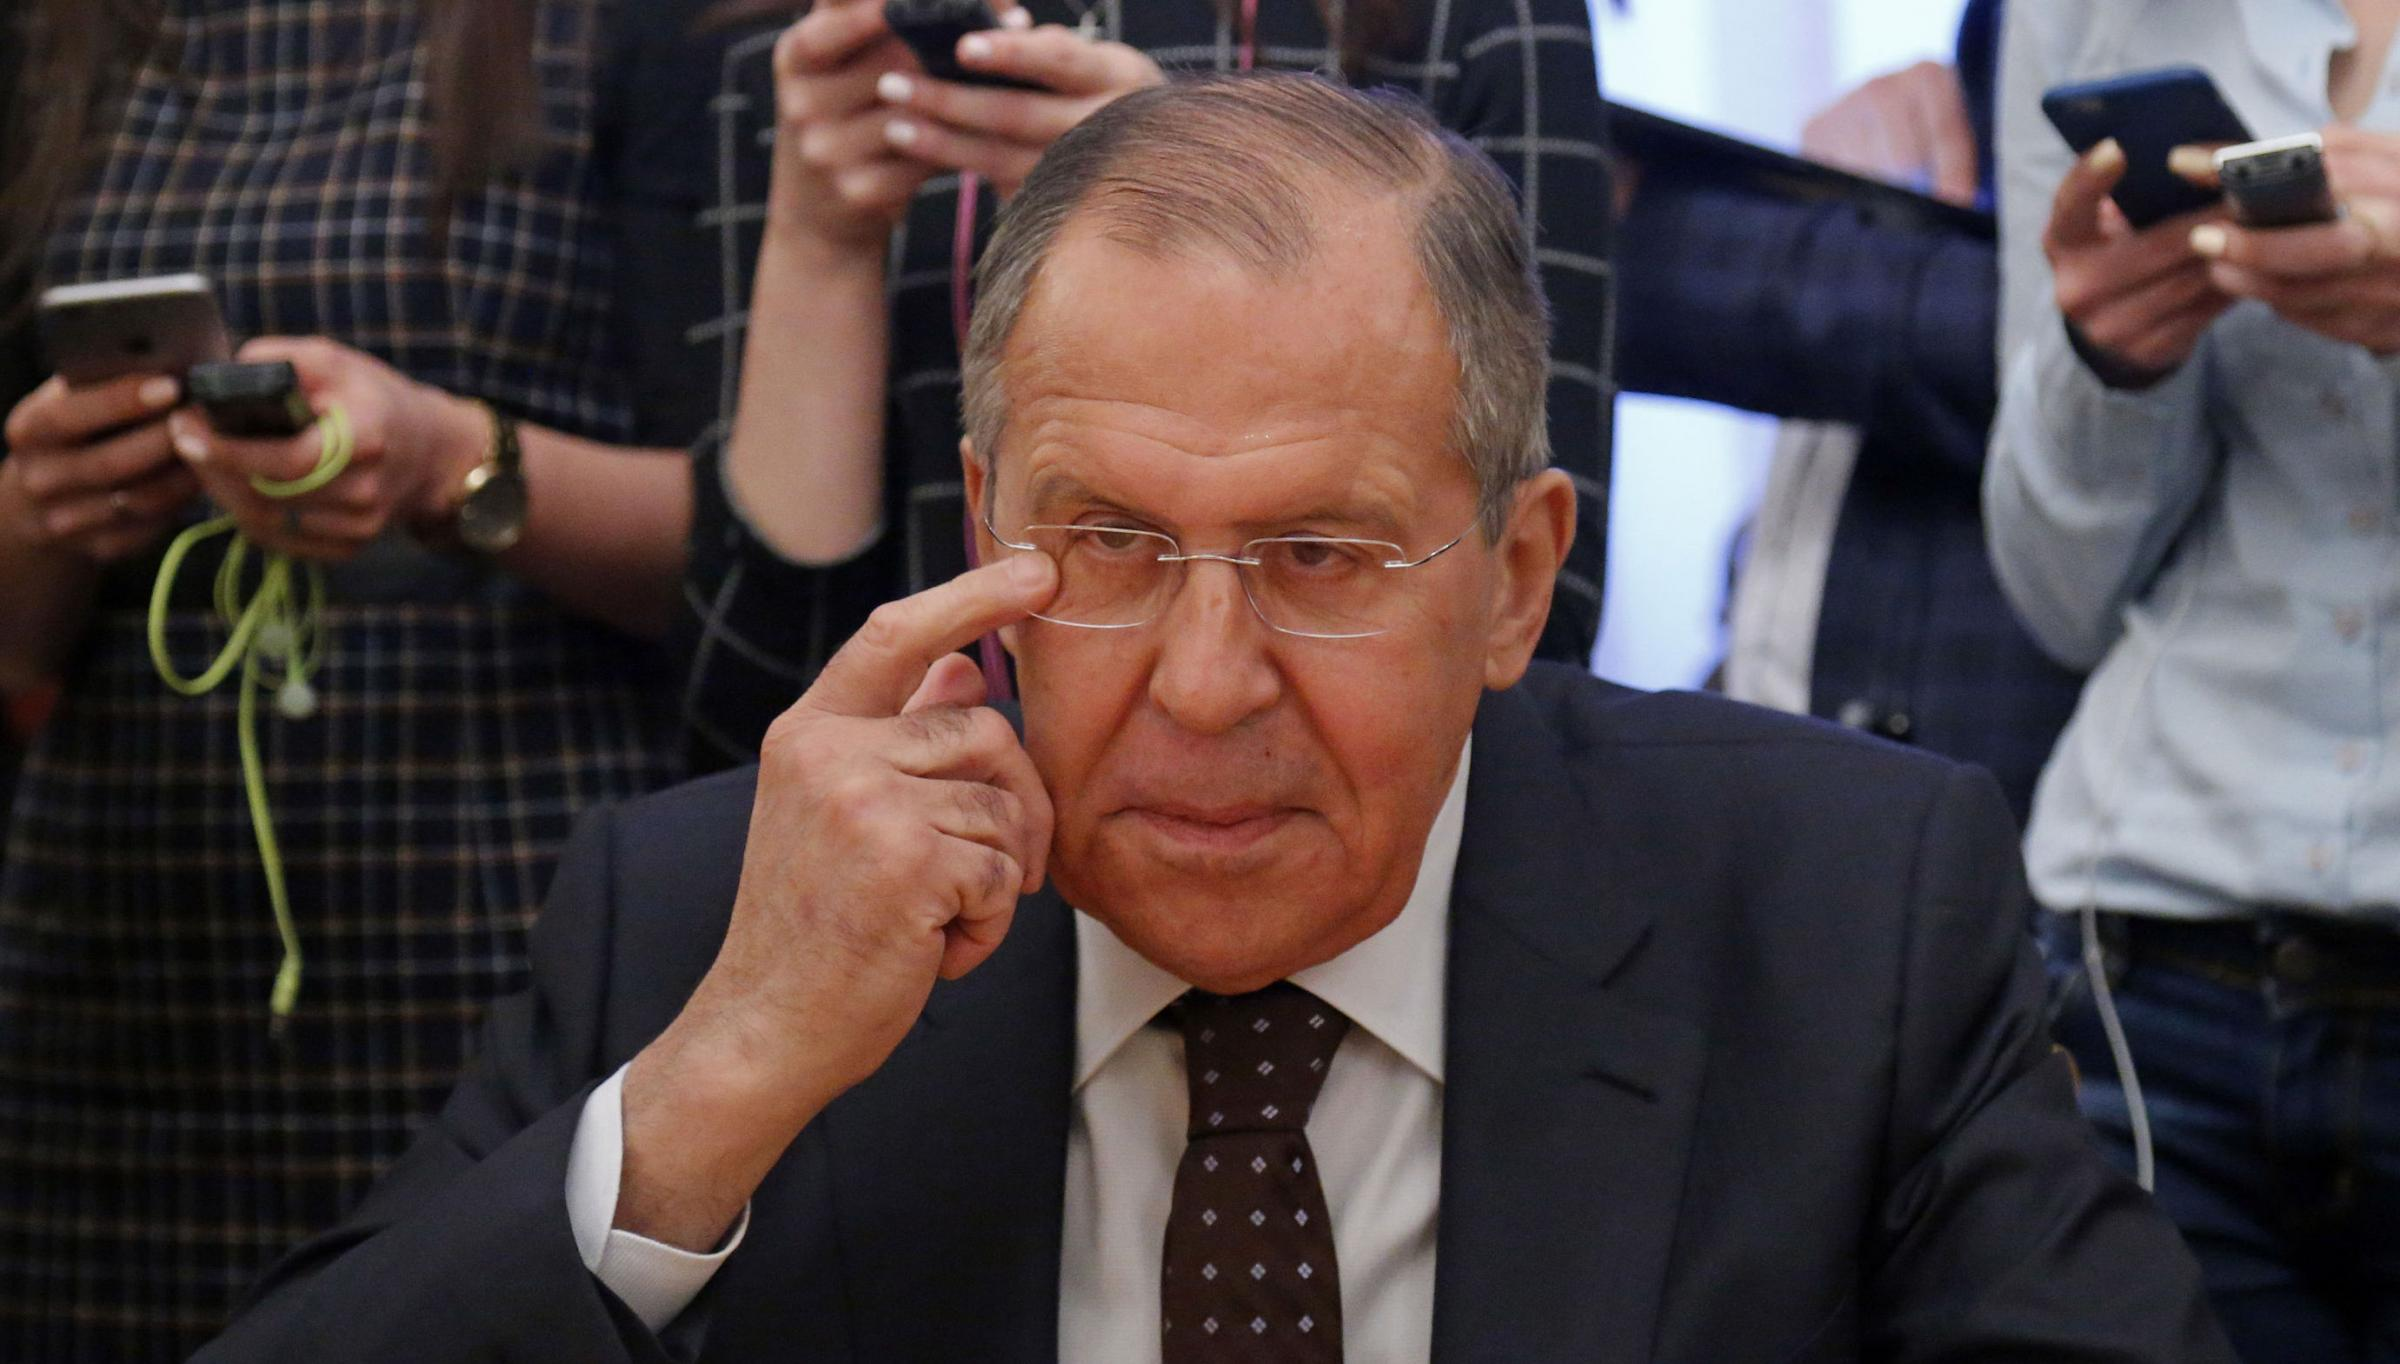 Russian foreign minister Sergey Lavrov has denied the country's involvement in the attempted murder